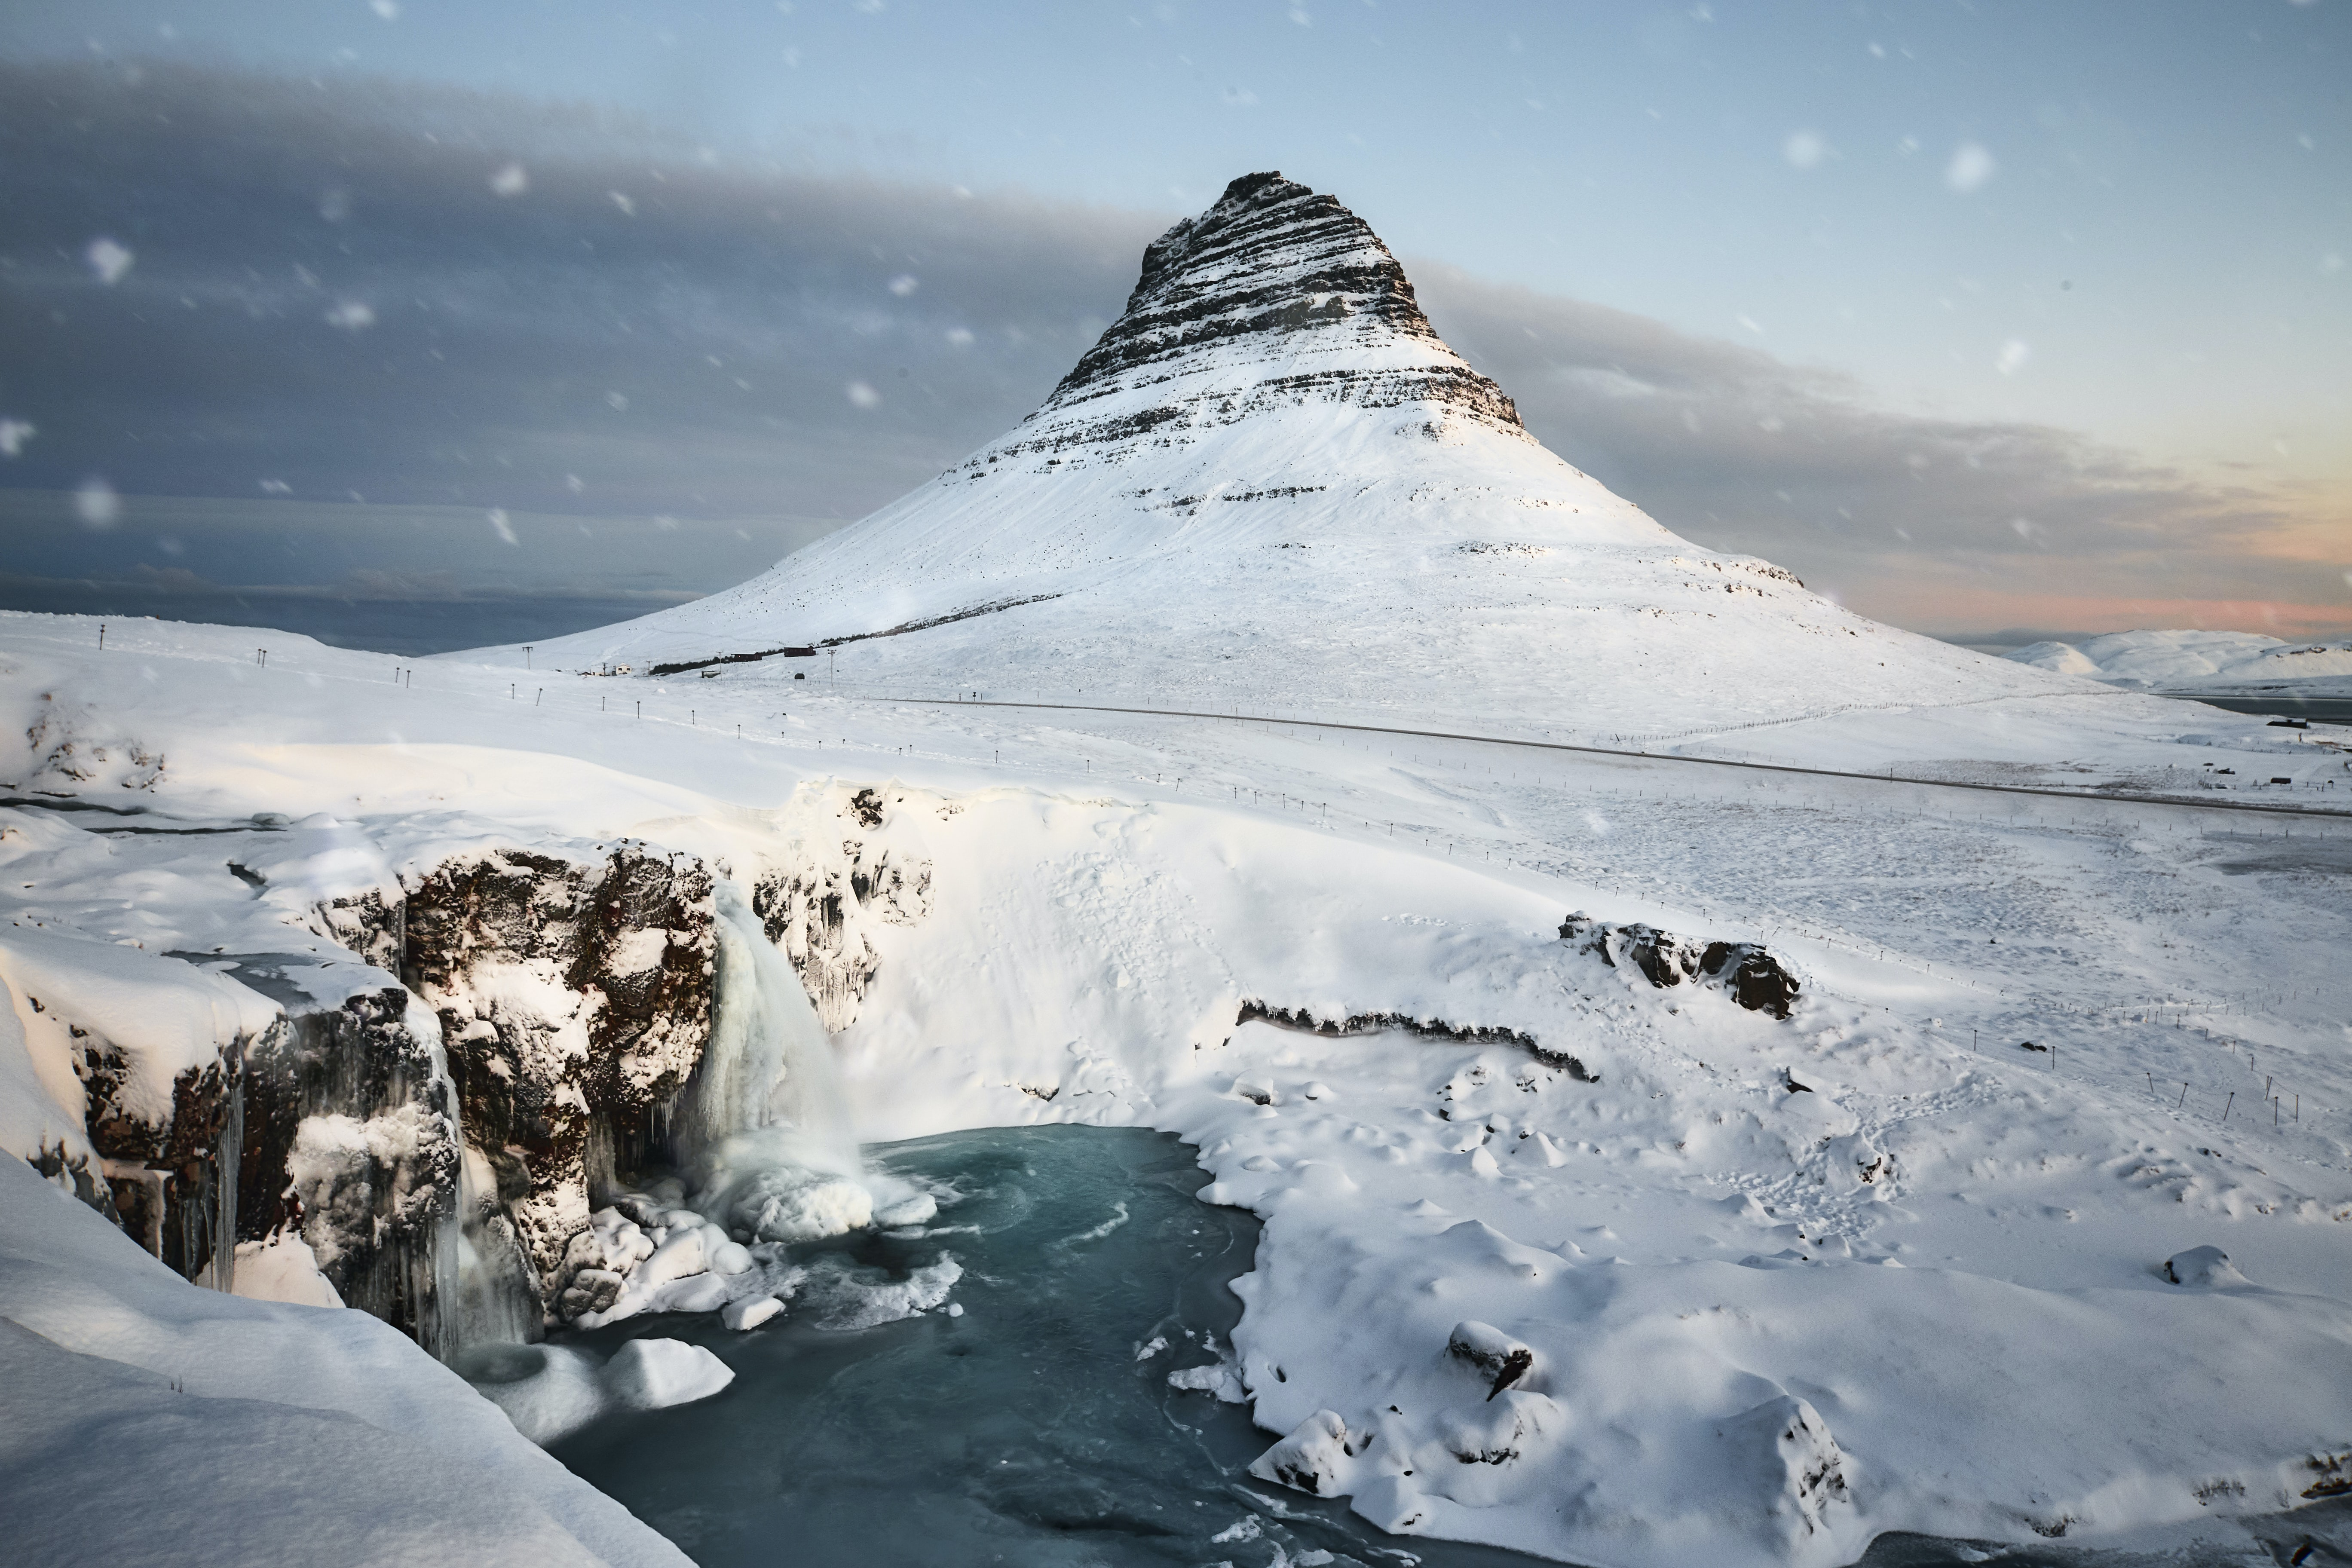 kirkjufellfoss in Iceland covered with snow during daytime